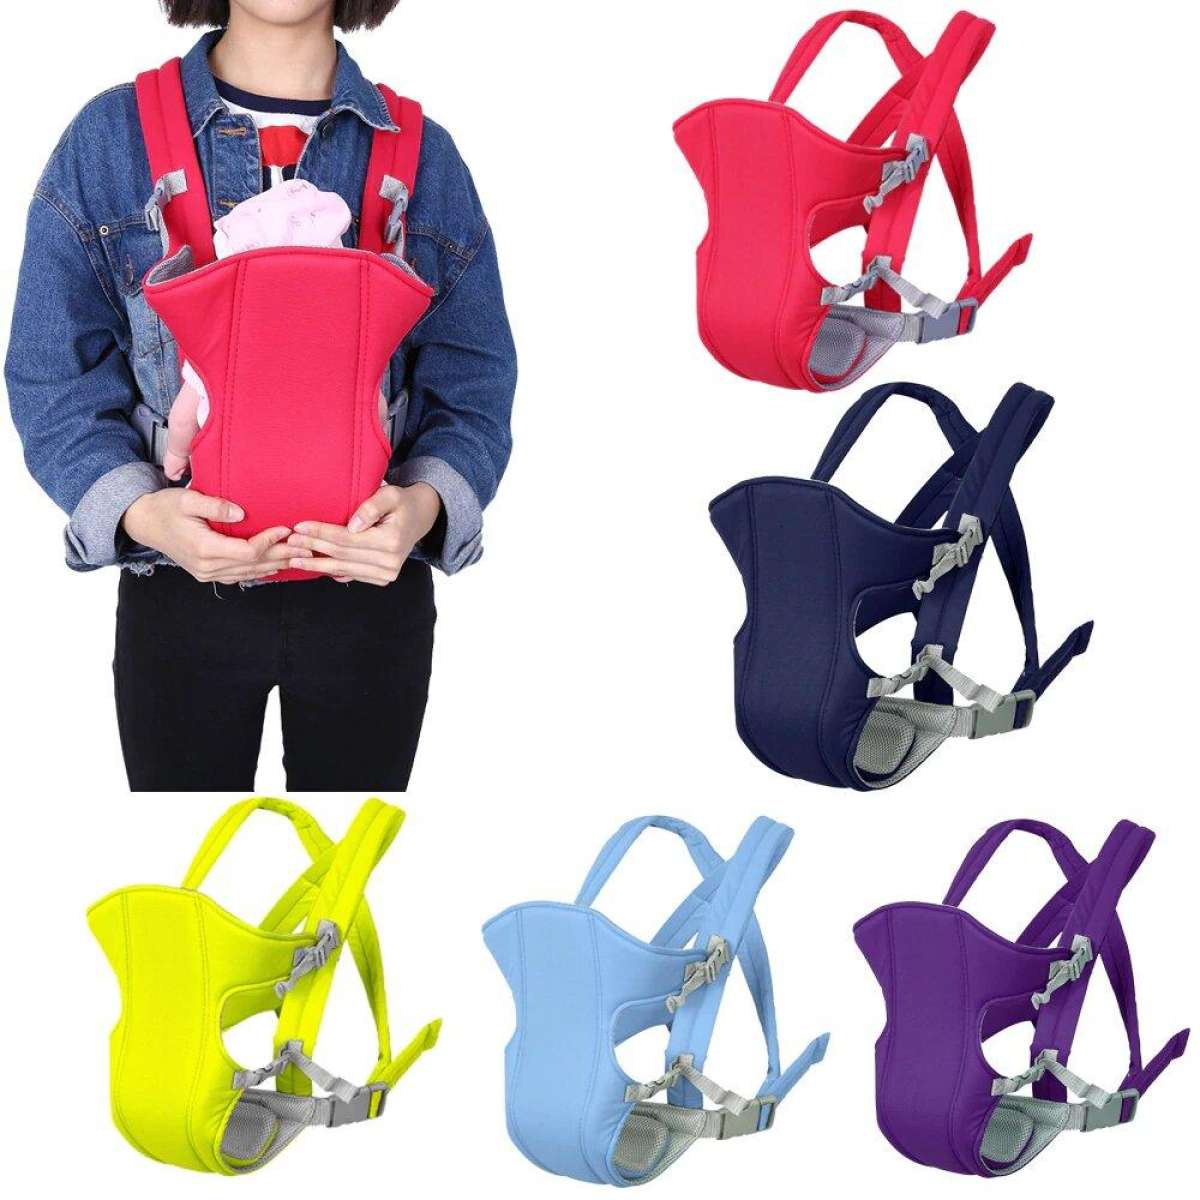 special offer for Baby Carrier Adjustable Bag with stylish and fancy Waist Belt